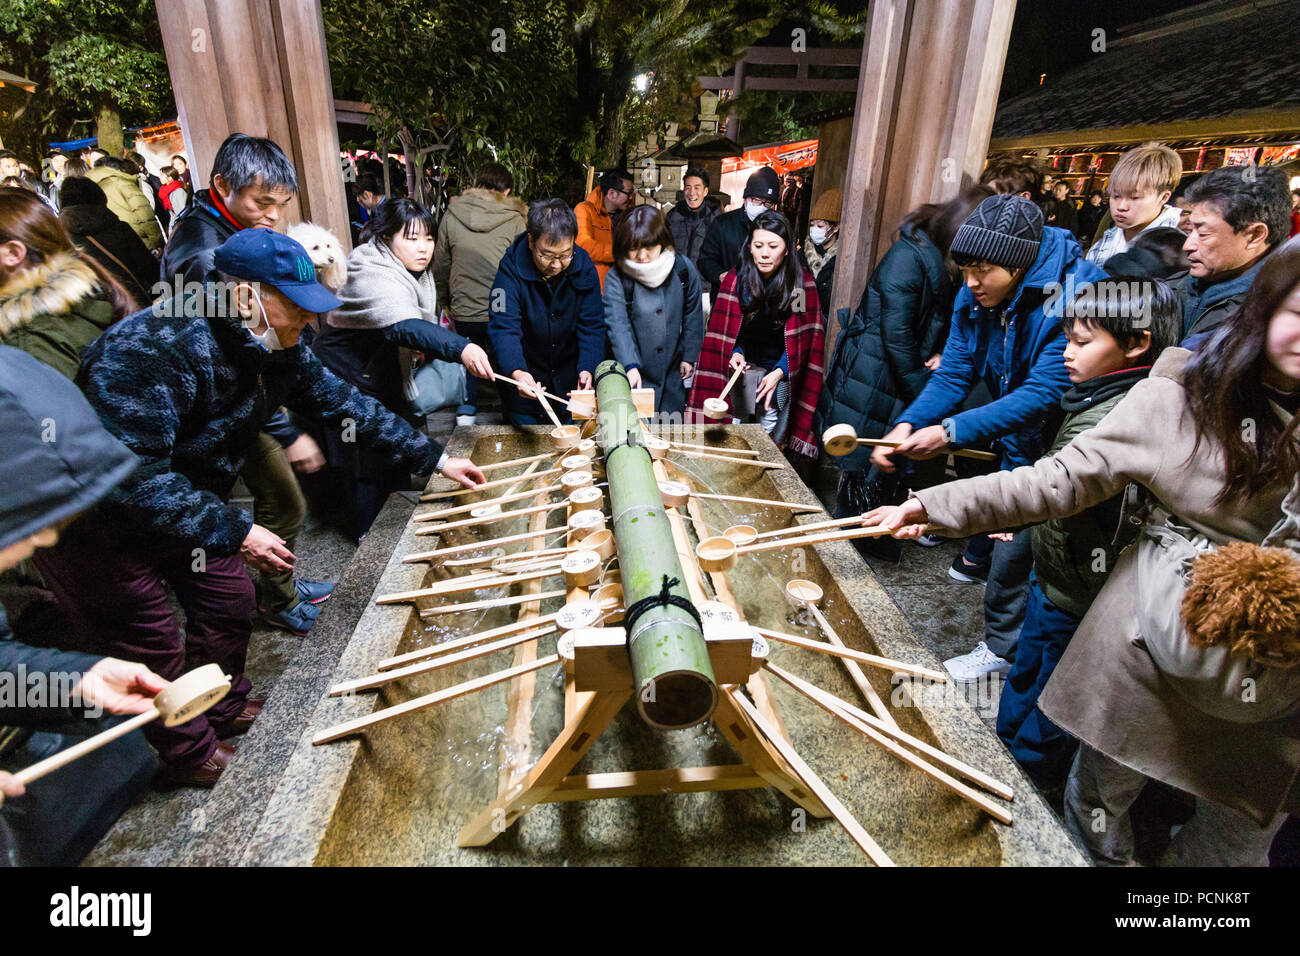 Shogatsu, New Year, Nishinomiya Shinto shrine, Japan. Purification basin, chozuya, packed at midnight with people arriving for Hatsumode, first visit. - Stock Image